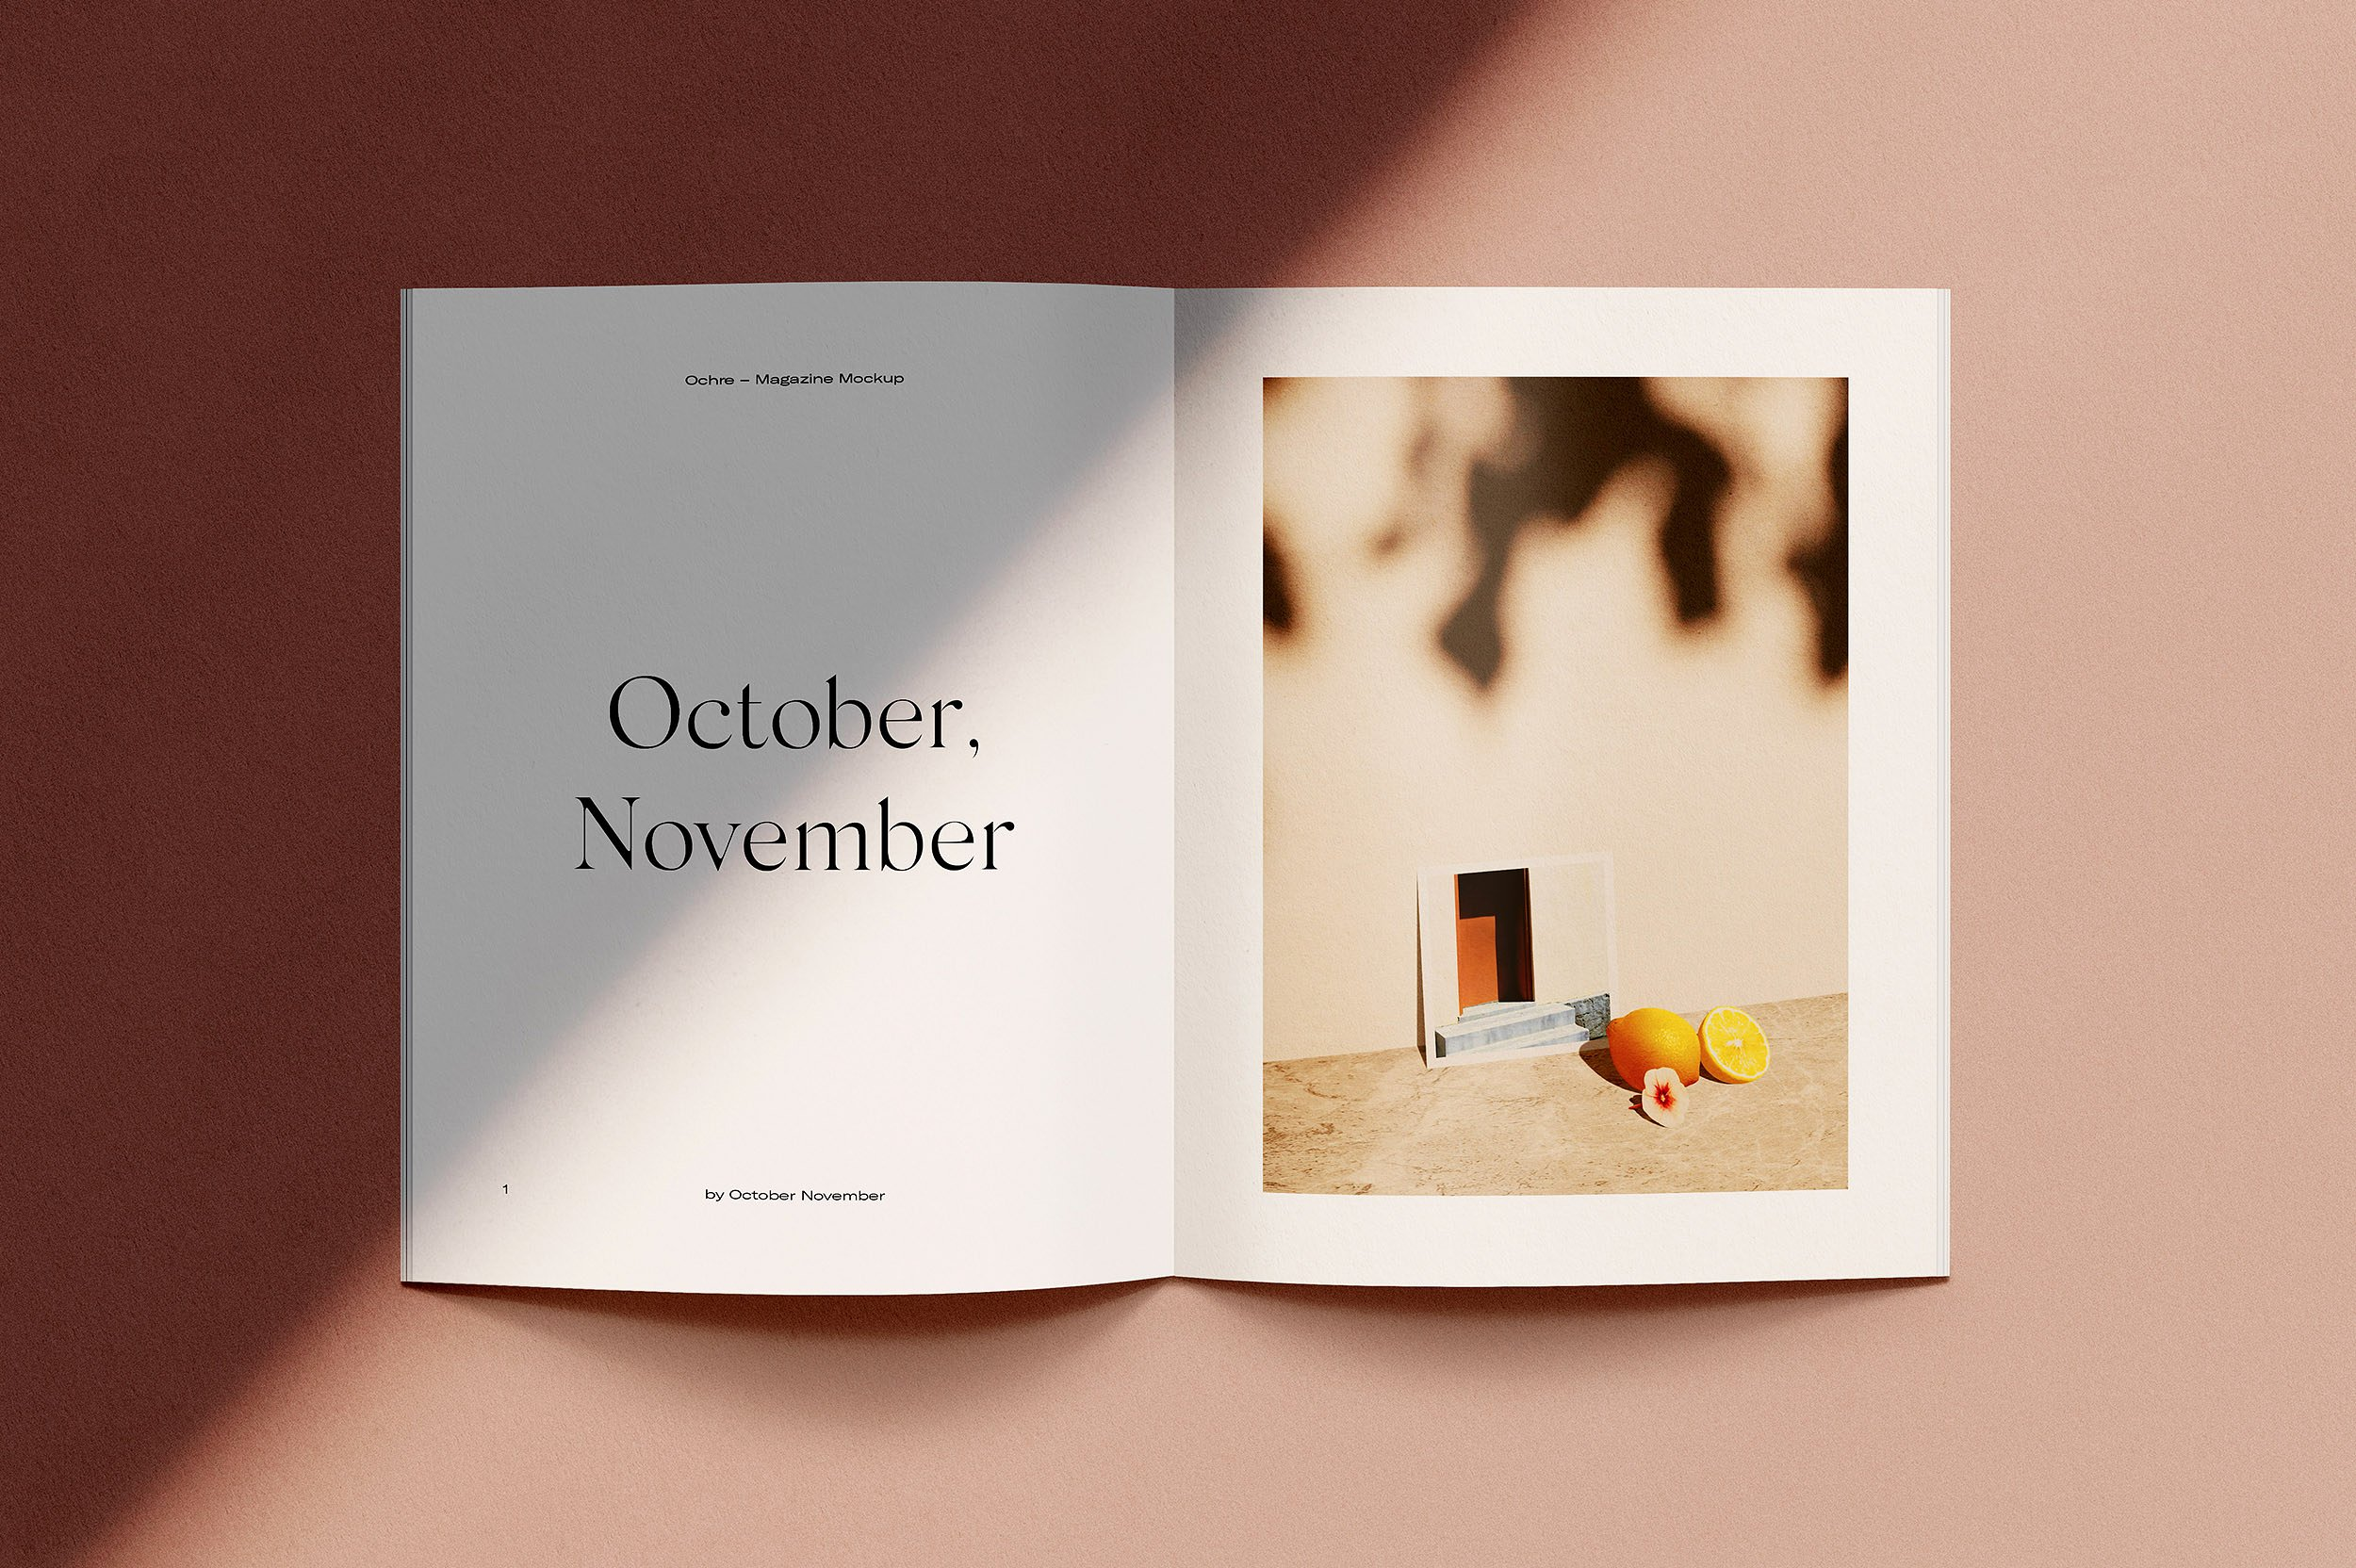 Ochre – Magazine Mockups by October November